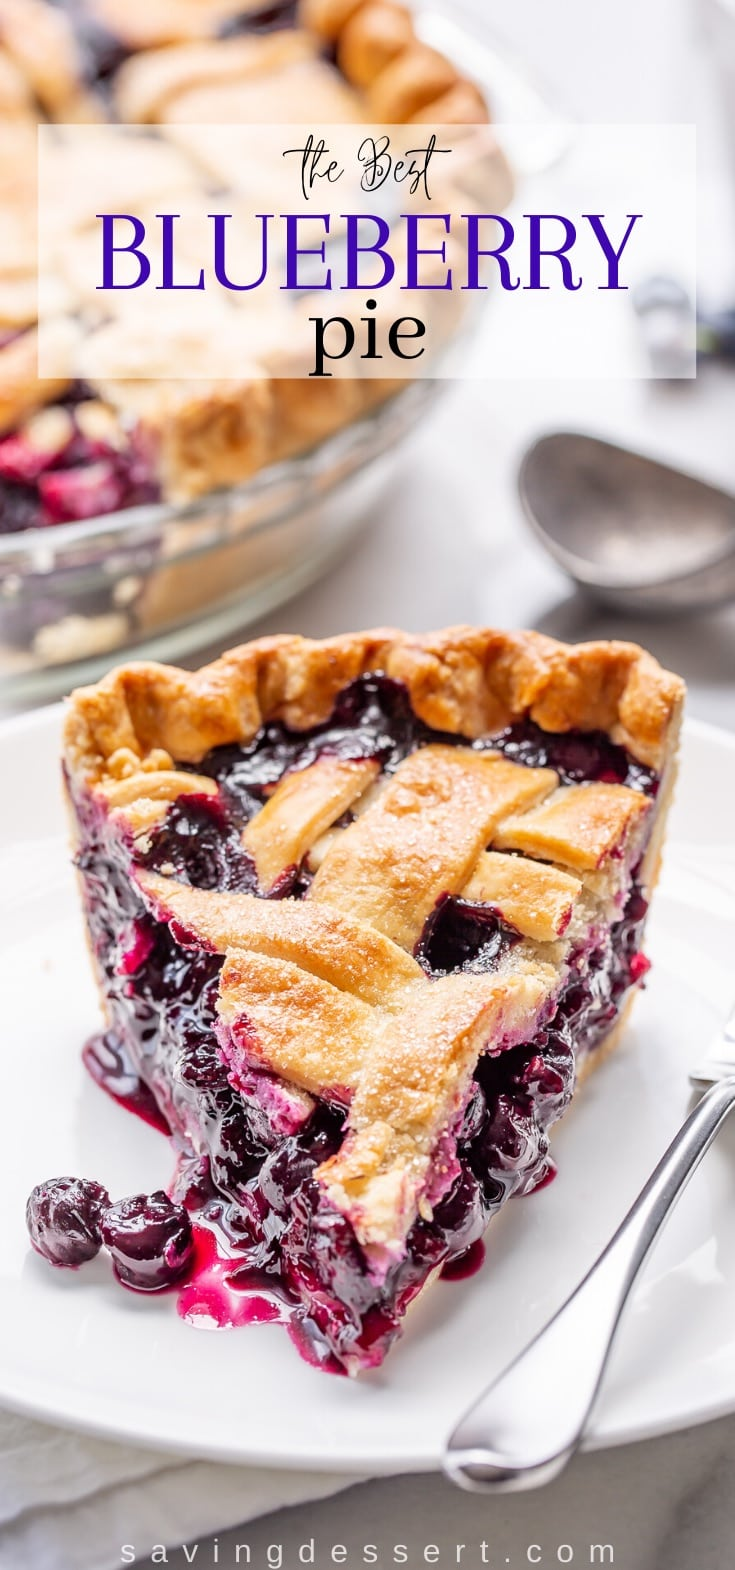 A slice of a lattice topped pie with blueberry filling